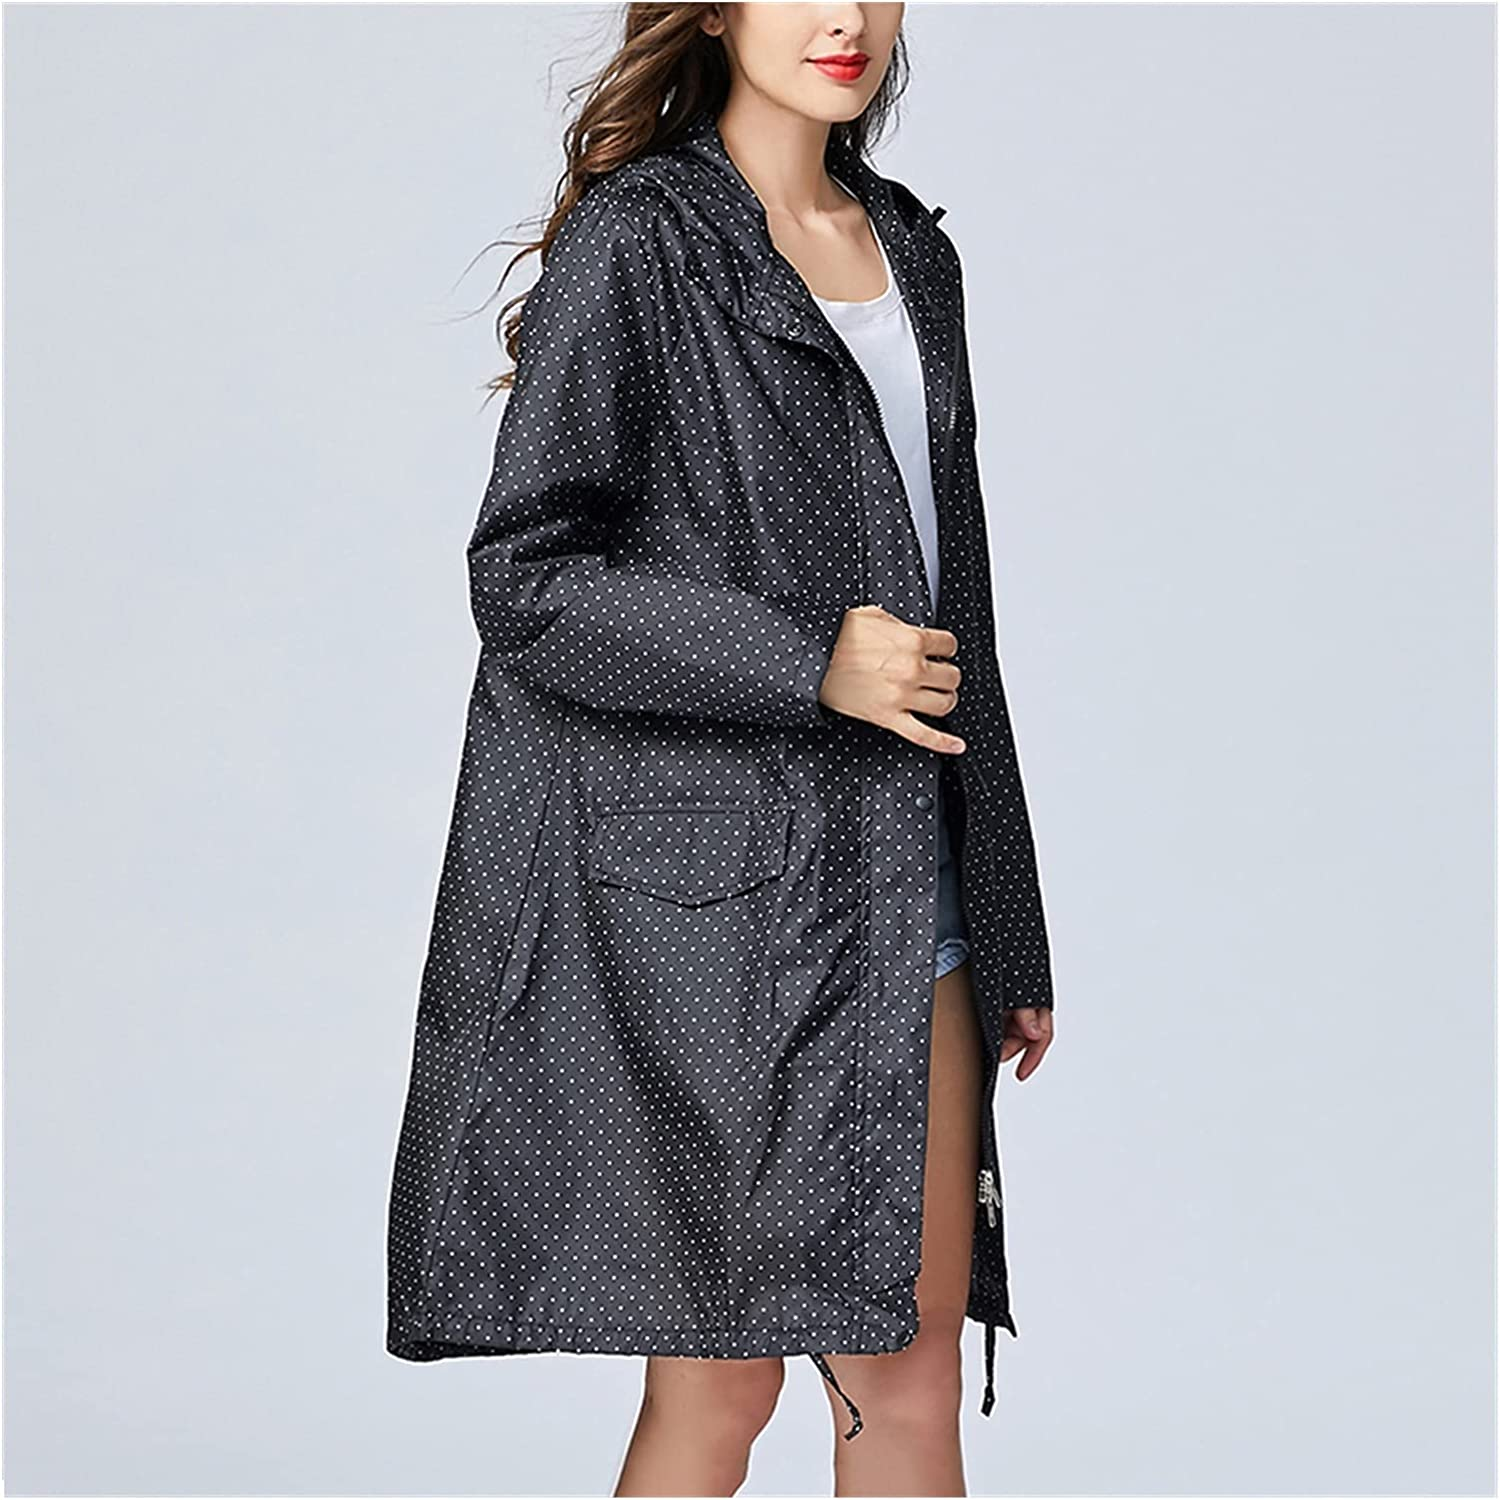 LSDJGDDE Long Trench Selling New popularity and selling Coat Adult Waterproof Men Breatha Women